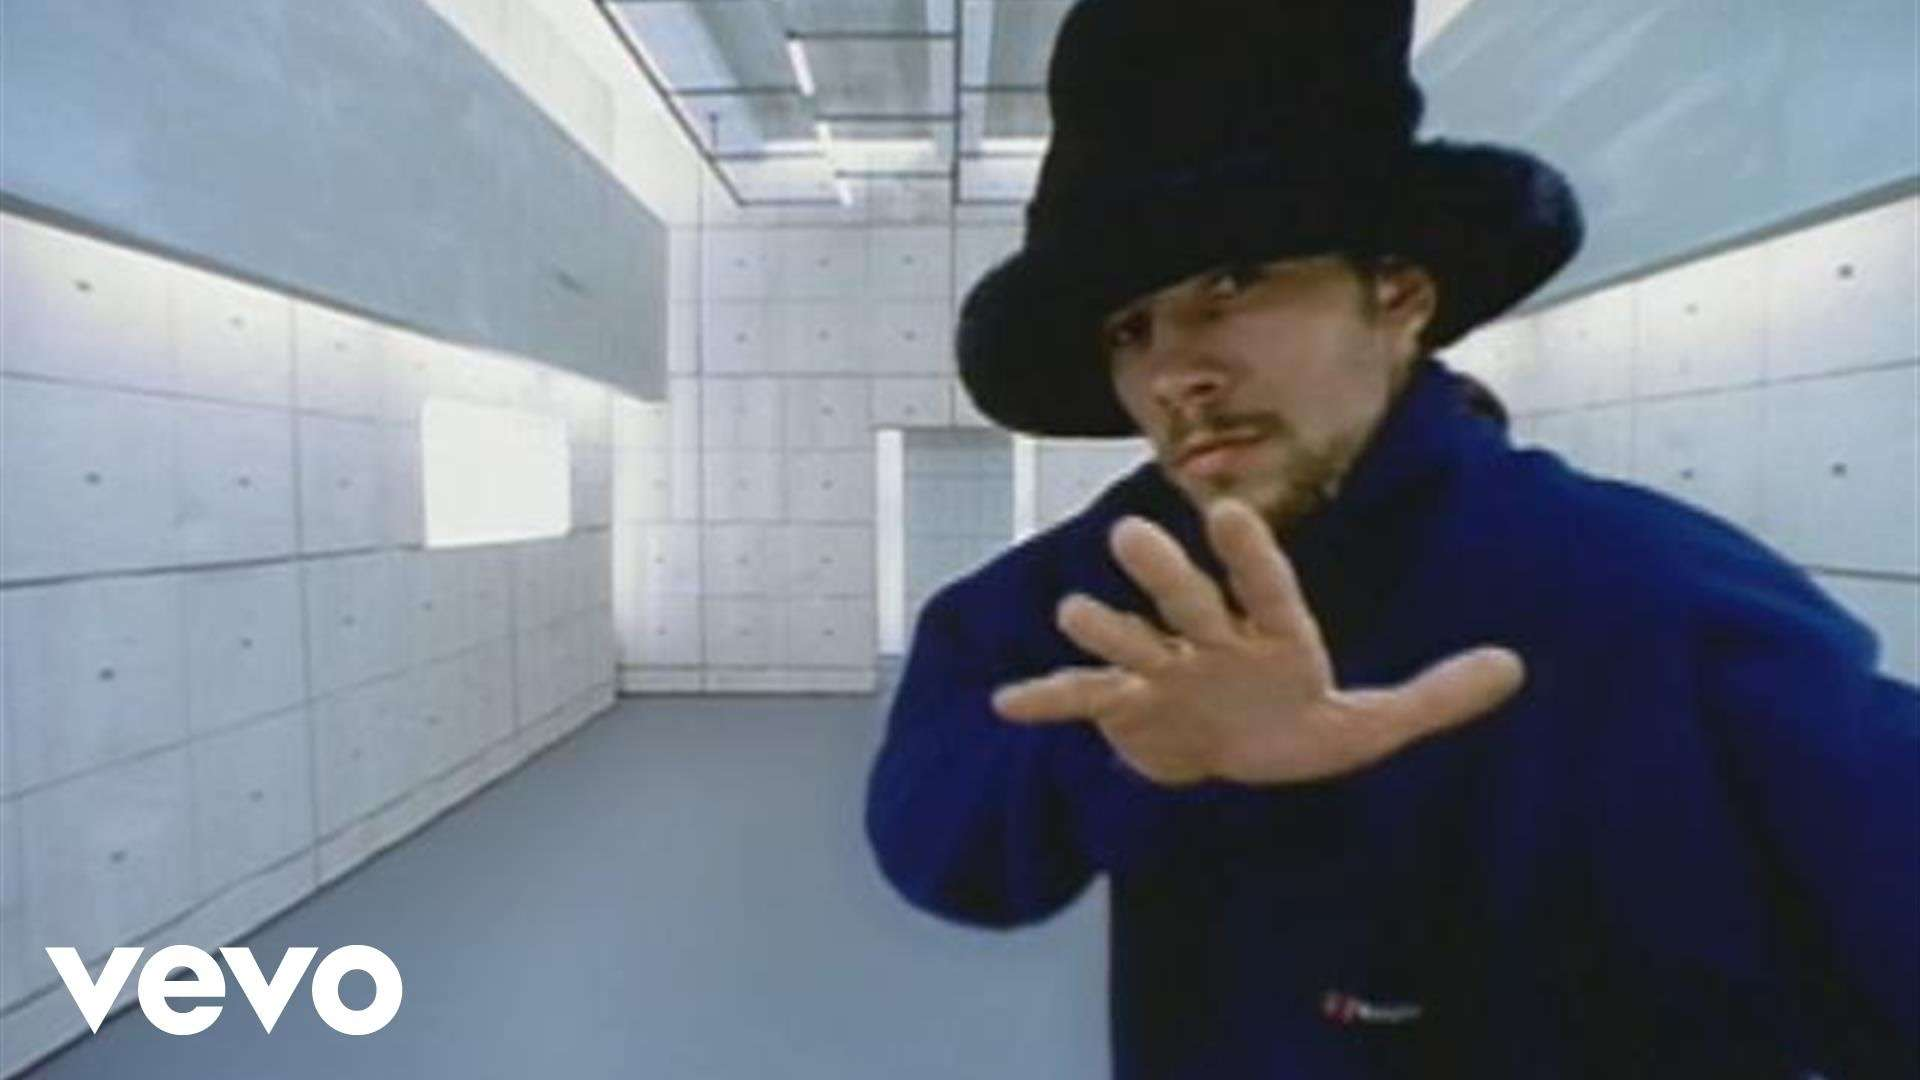 Jamiroquai - Virtual Insanity (Official Video) - YouTube